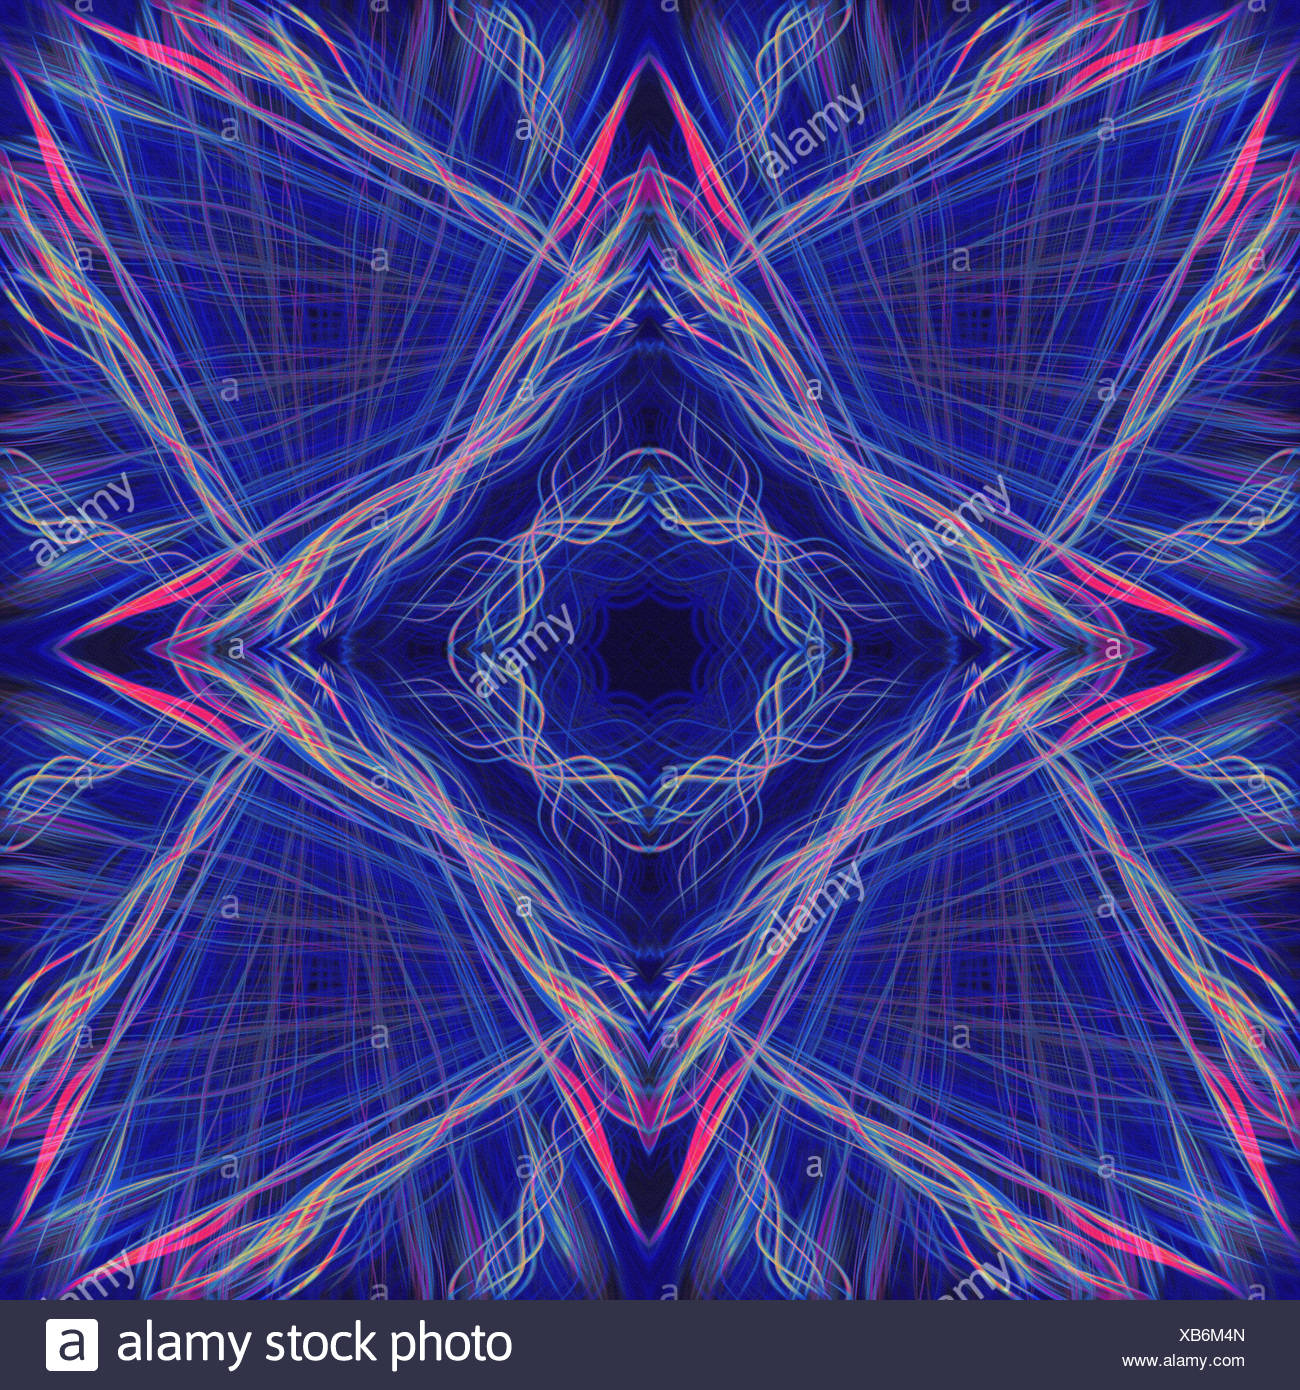 Blue light trails star pattern Stock Photo: 282274629 - Alamy